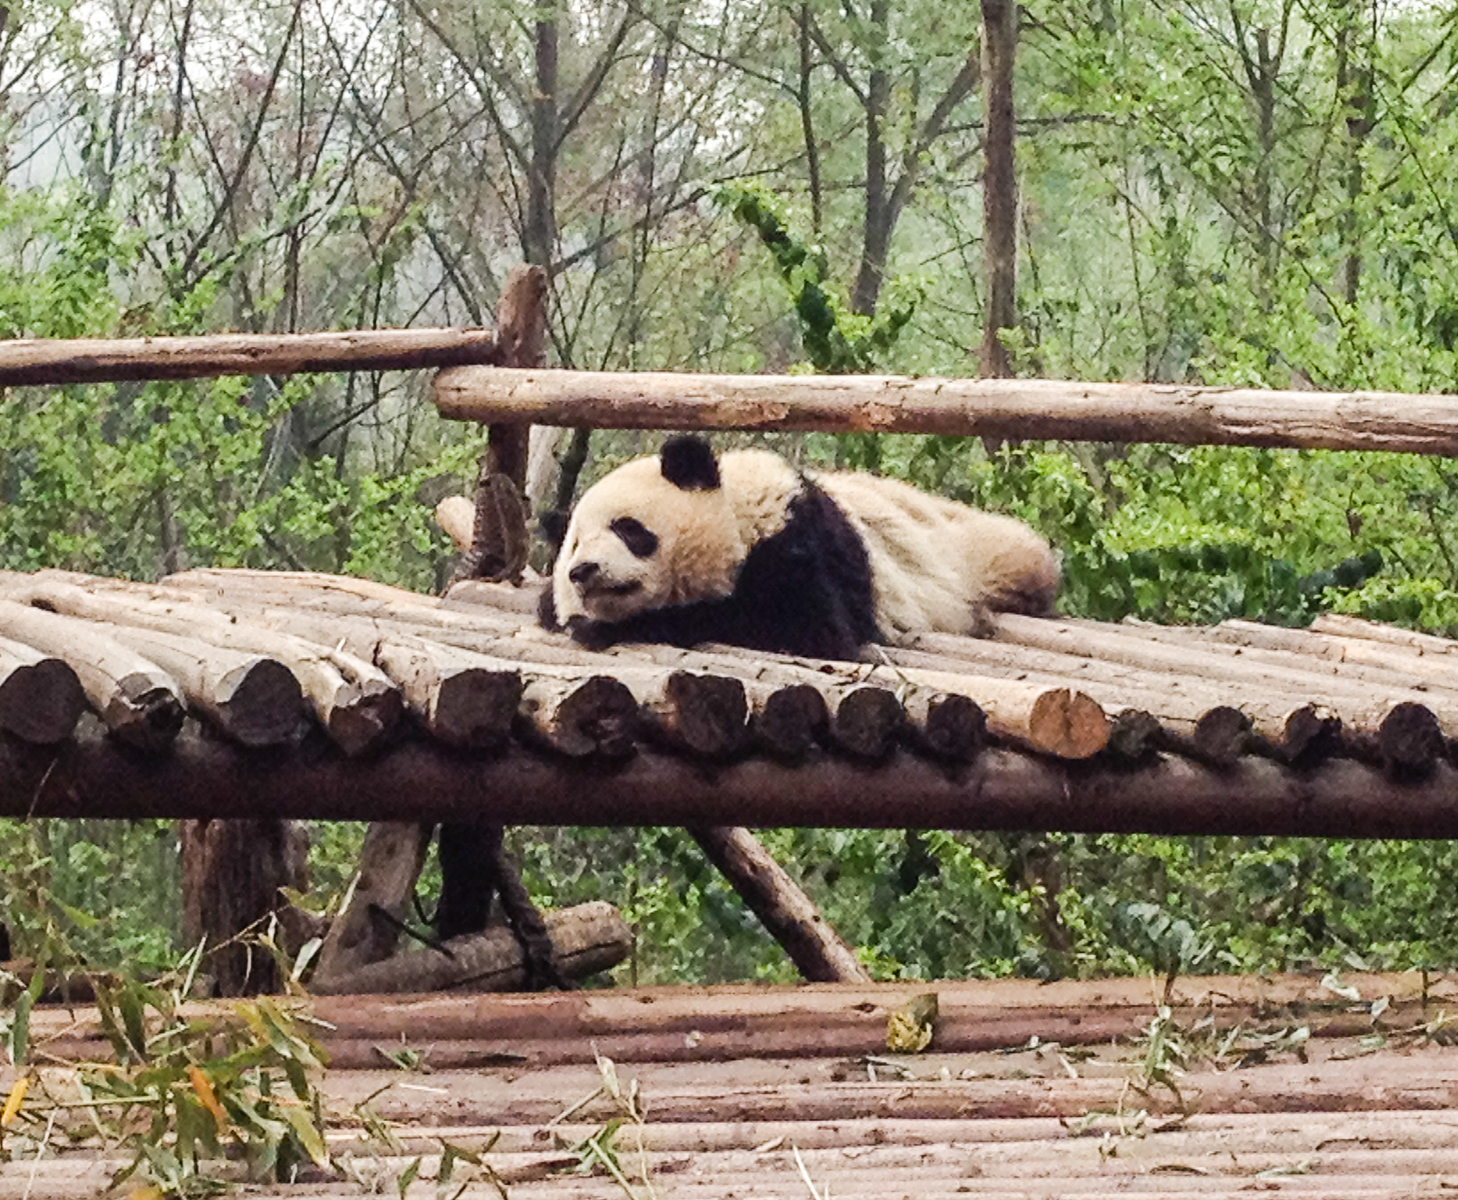 A panda rests on a wooden platform at the Chengdu Panda Base, one of the places for seeing pandas in China.